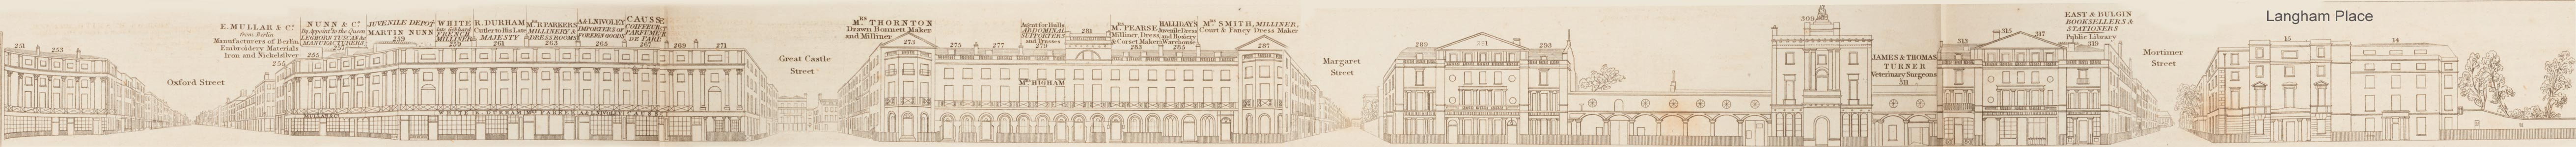 map - Tallis's London street views : No. 16. Regent Street, division 1 (west)